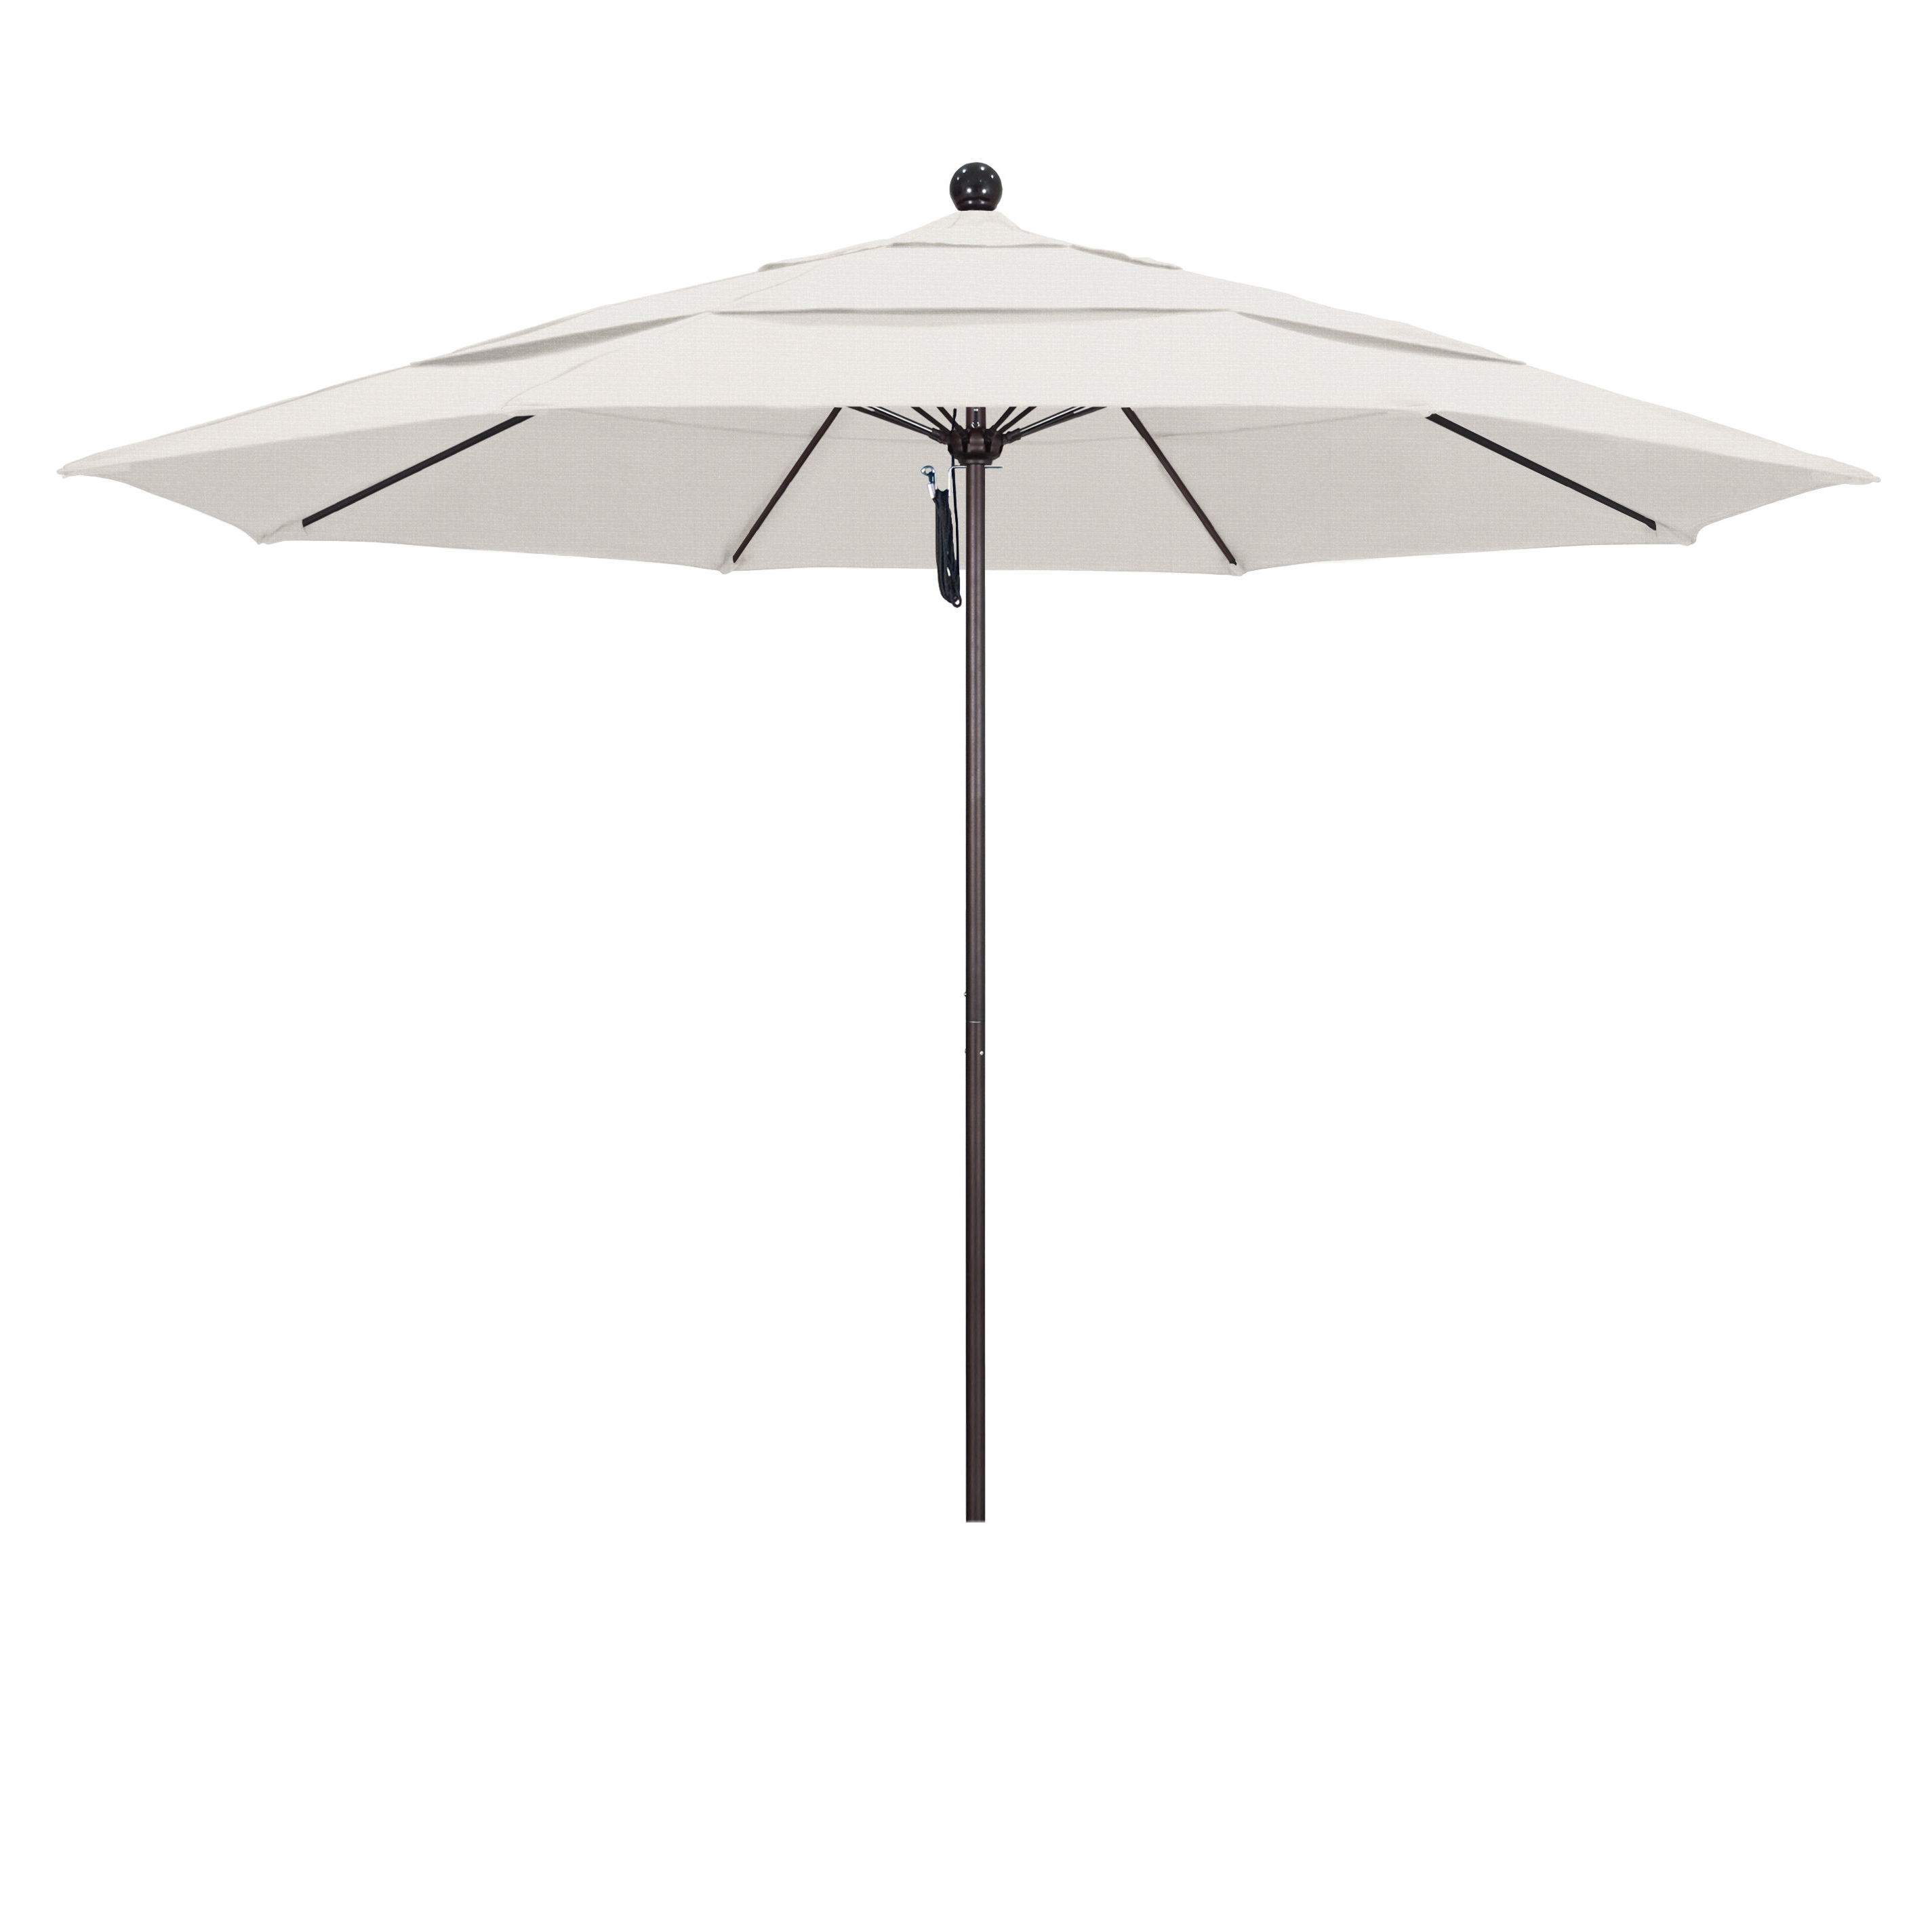 Preferred Davenport 11' Market Umbrella Regarding Launceston Market Umbrellas (View 8 of 20)